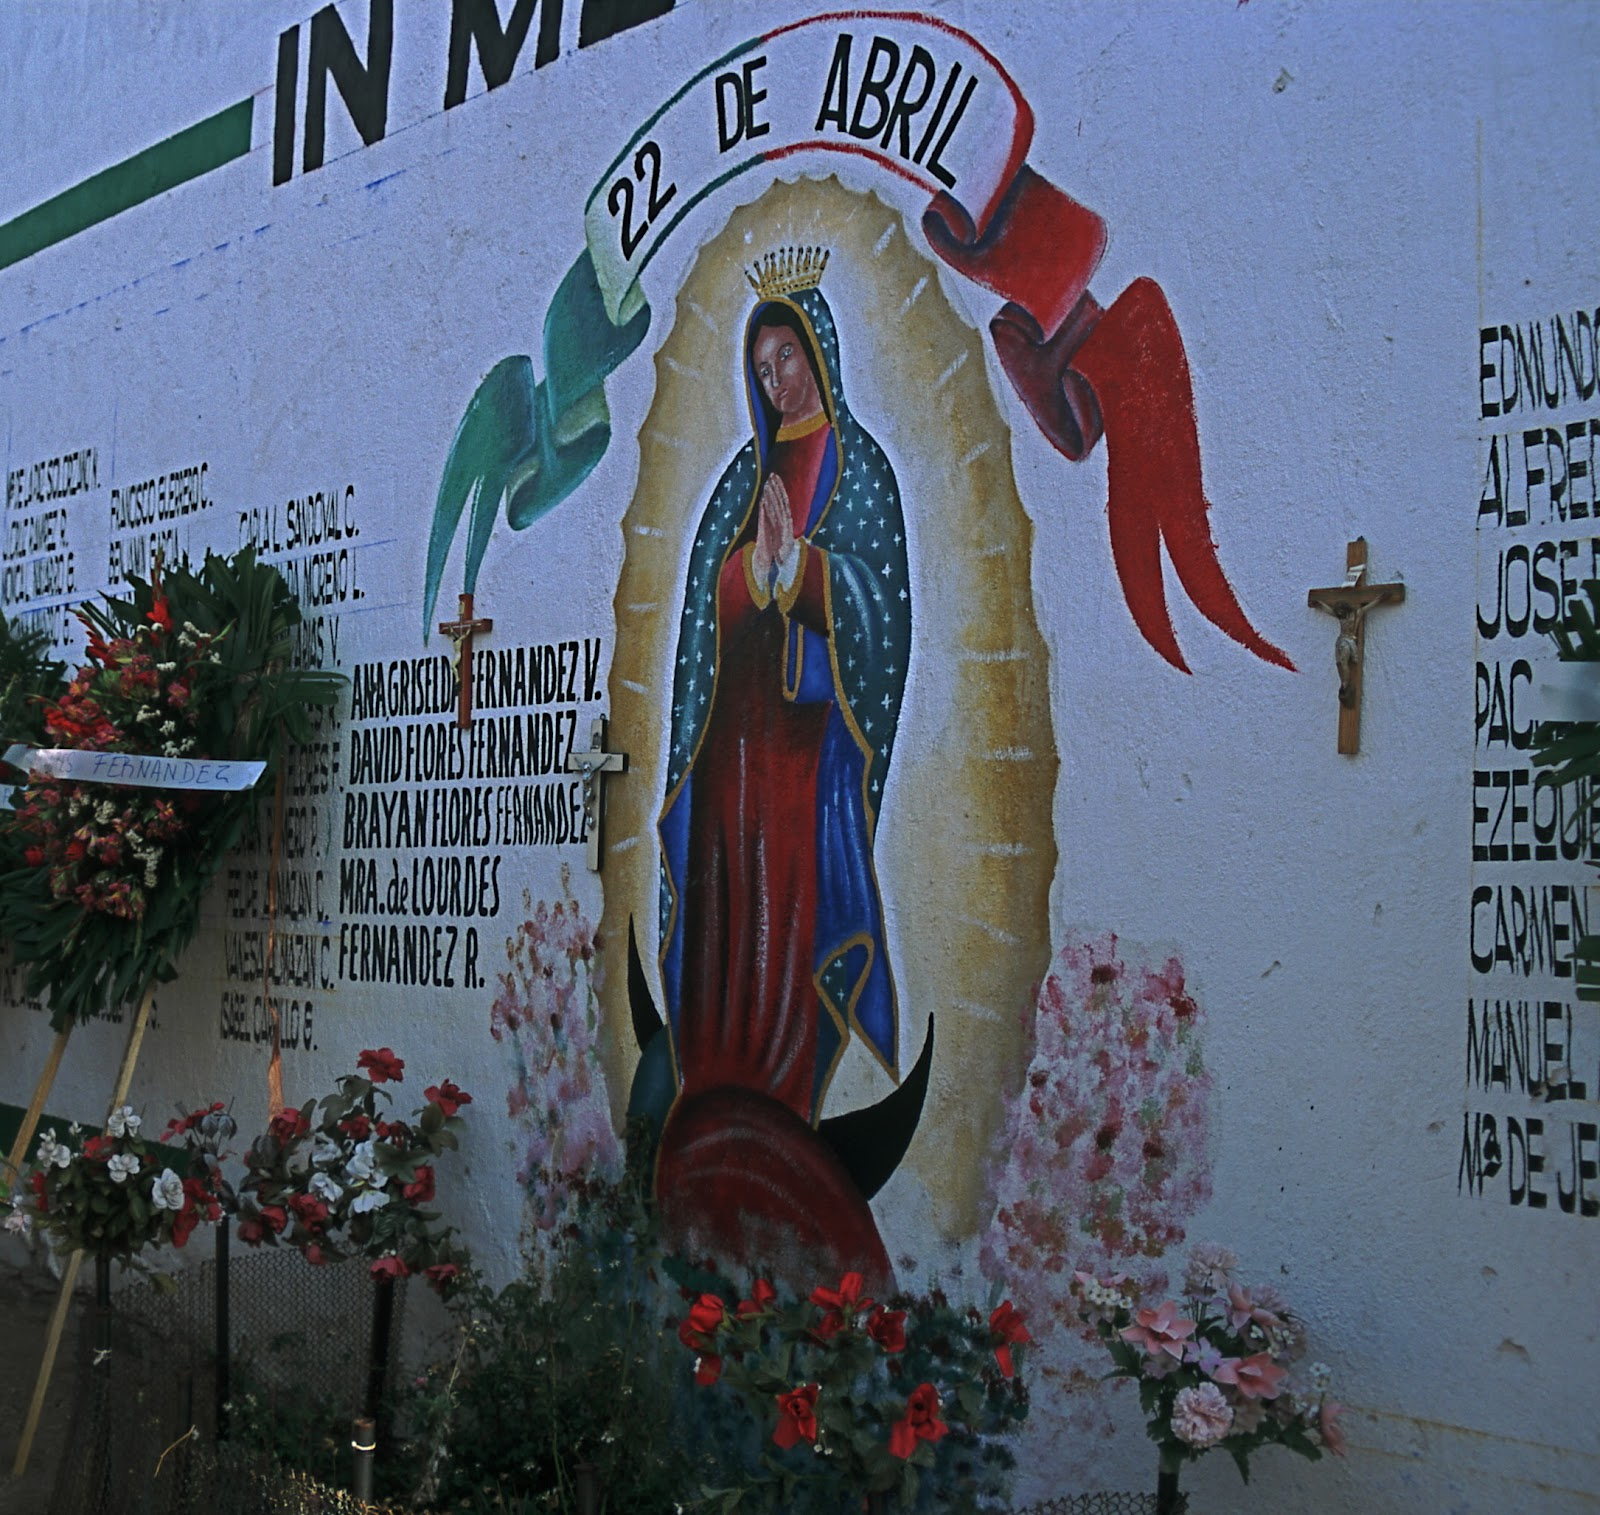 22 de abril 1992 for spanish speakers for El mural guadalajara jalisco